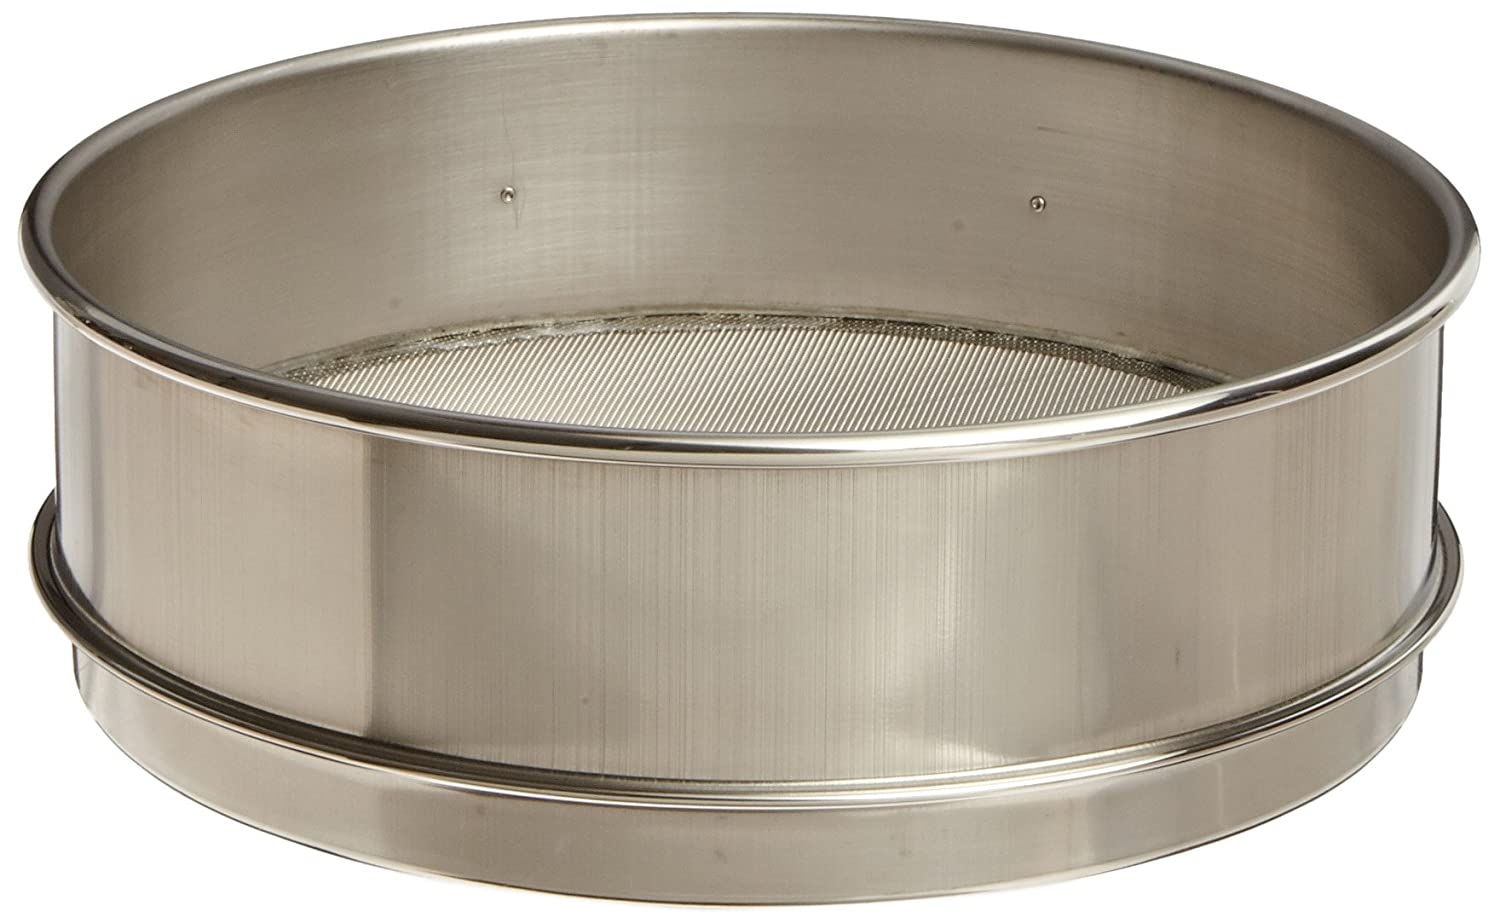 Advantech Stainless Steel Test Sieves, 8' Diameter, #35 Mesh, Full Height 8 Diameter 35SS8F